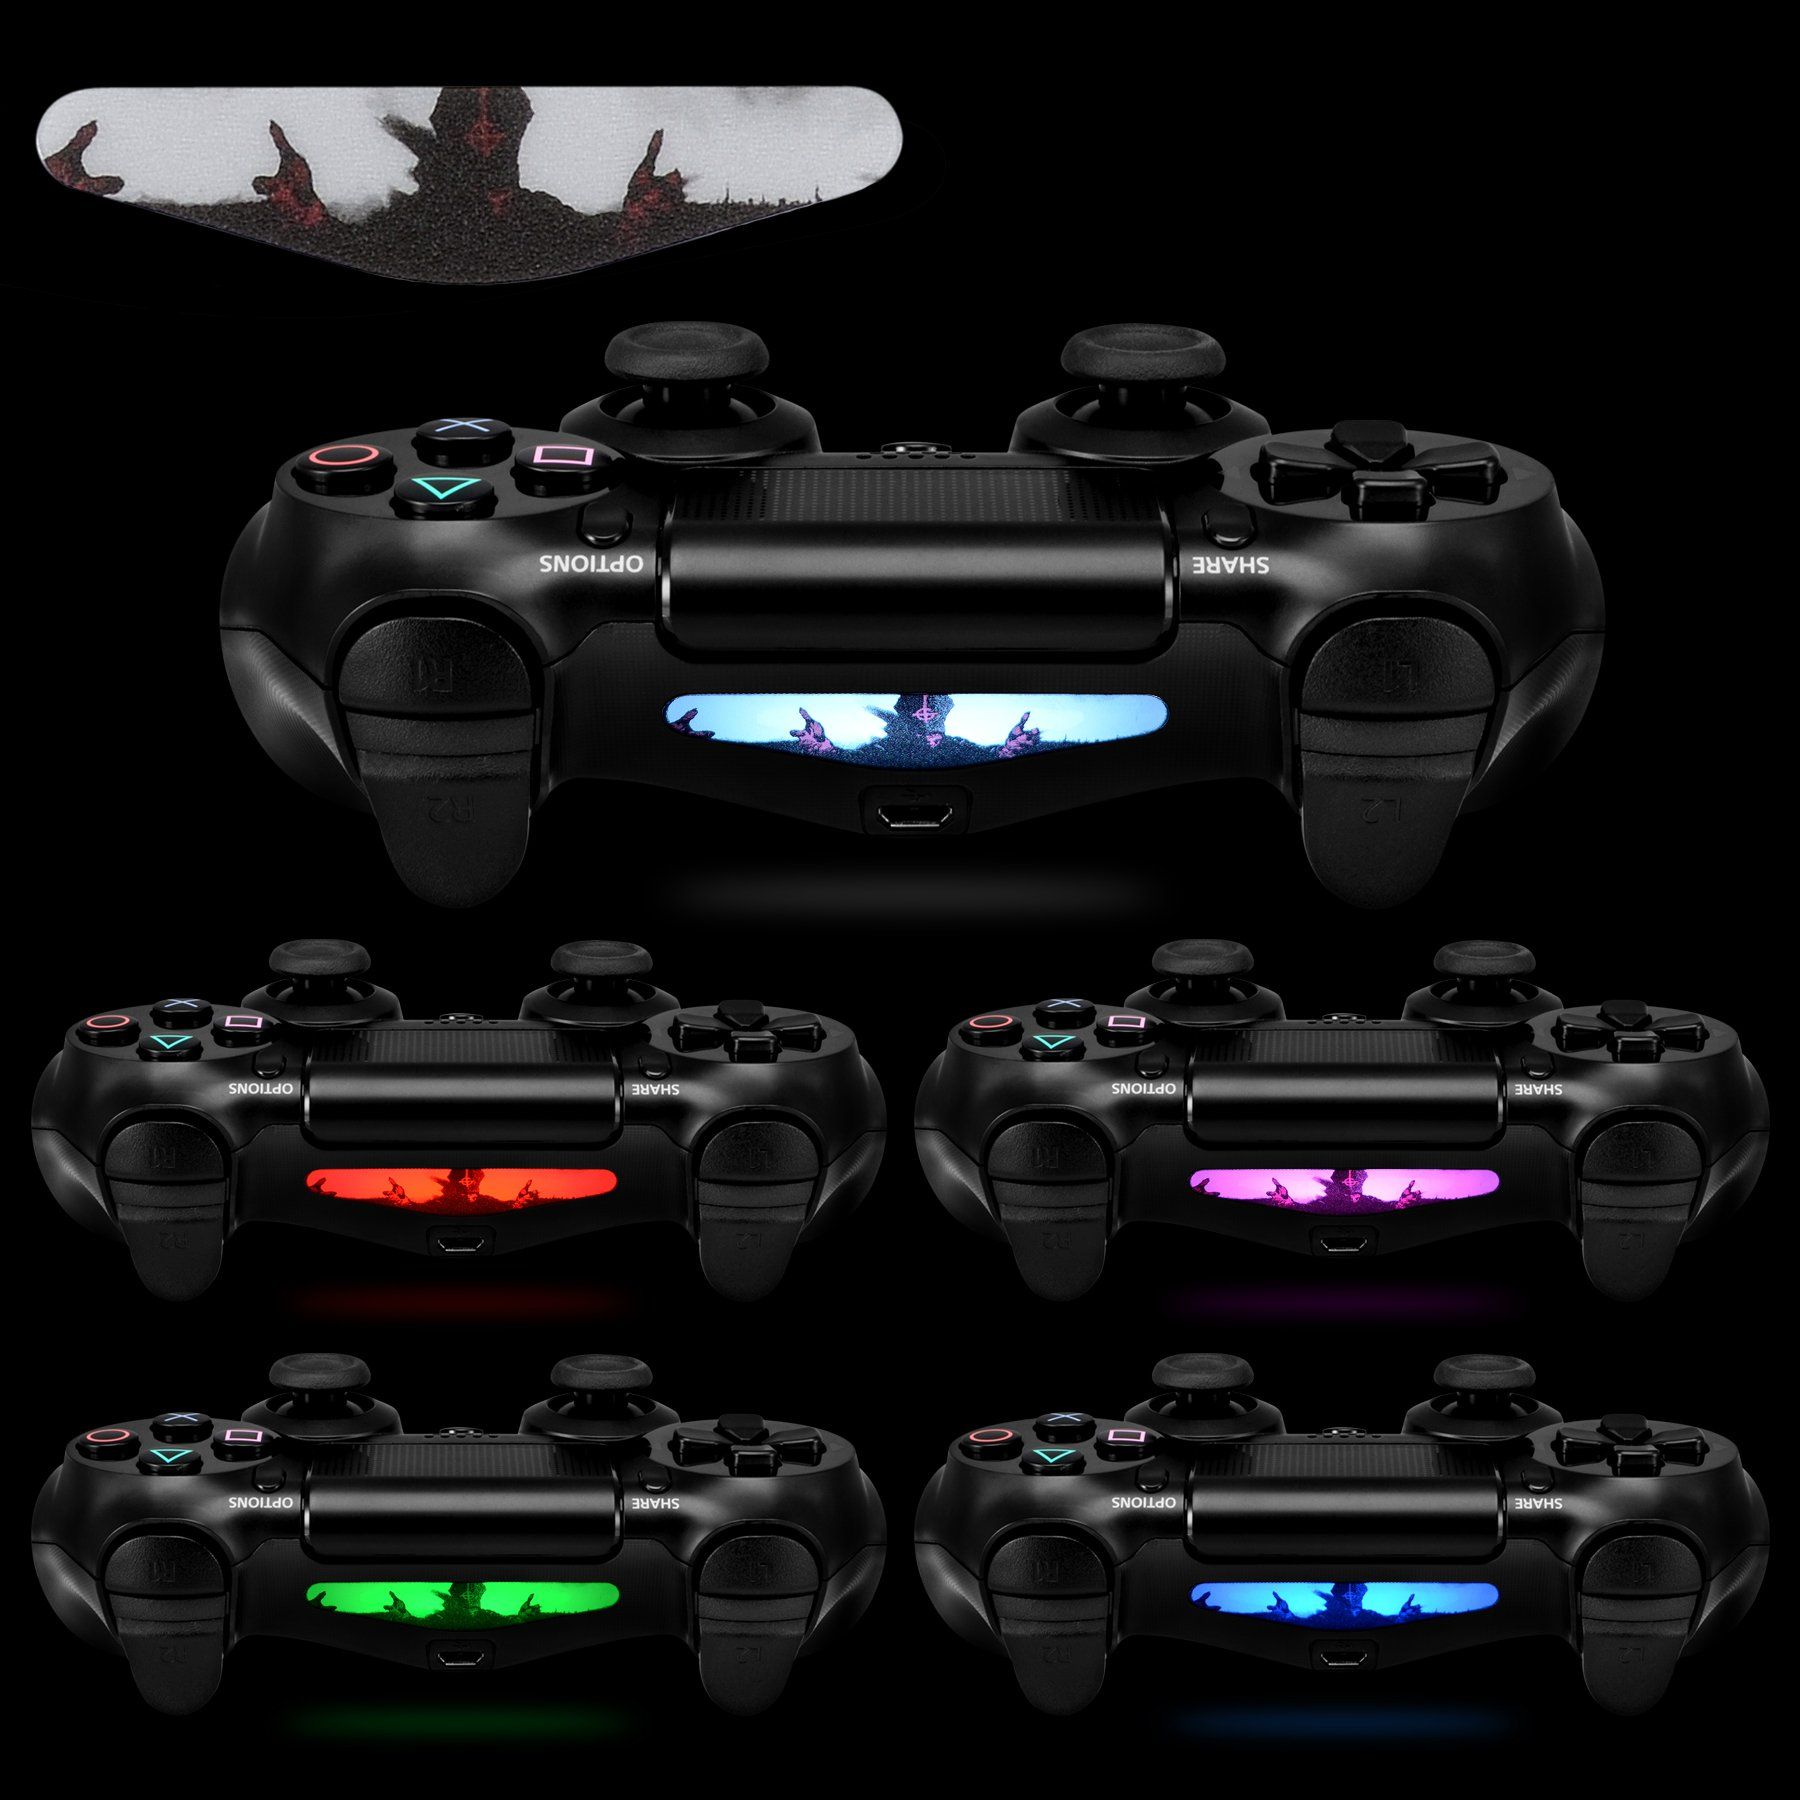 Extremerate 30 Pcs Set Color Artwork Pattern Signs Led Lightbar Cover Light Bar Decals Stickers Flim For Playstation 4 Ps4 Slim Ps4 Pro Contro Playstation Bar Lighting Ps4